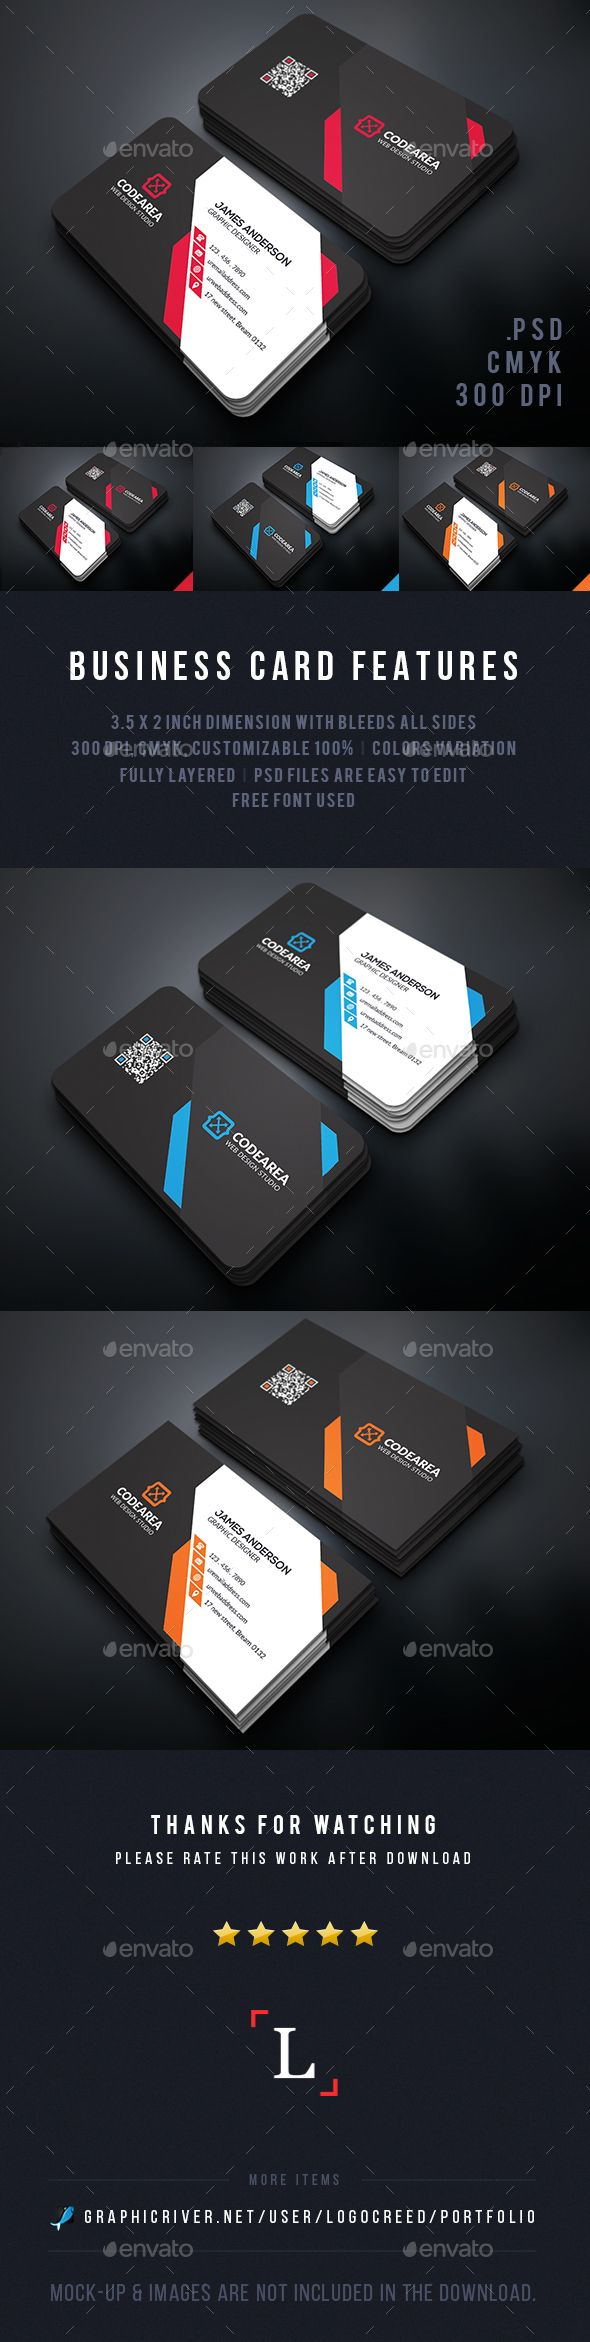 366 Best Business Card Design Images On Pinterest Business Card